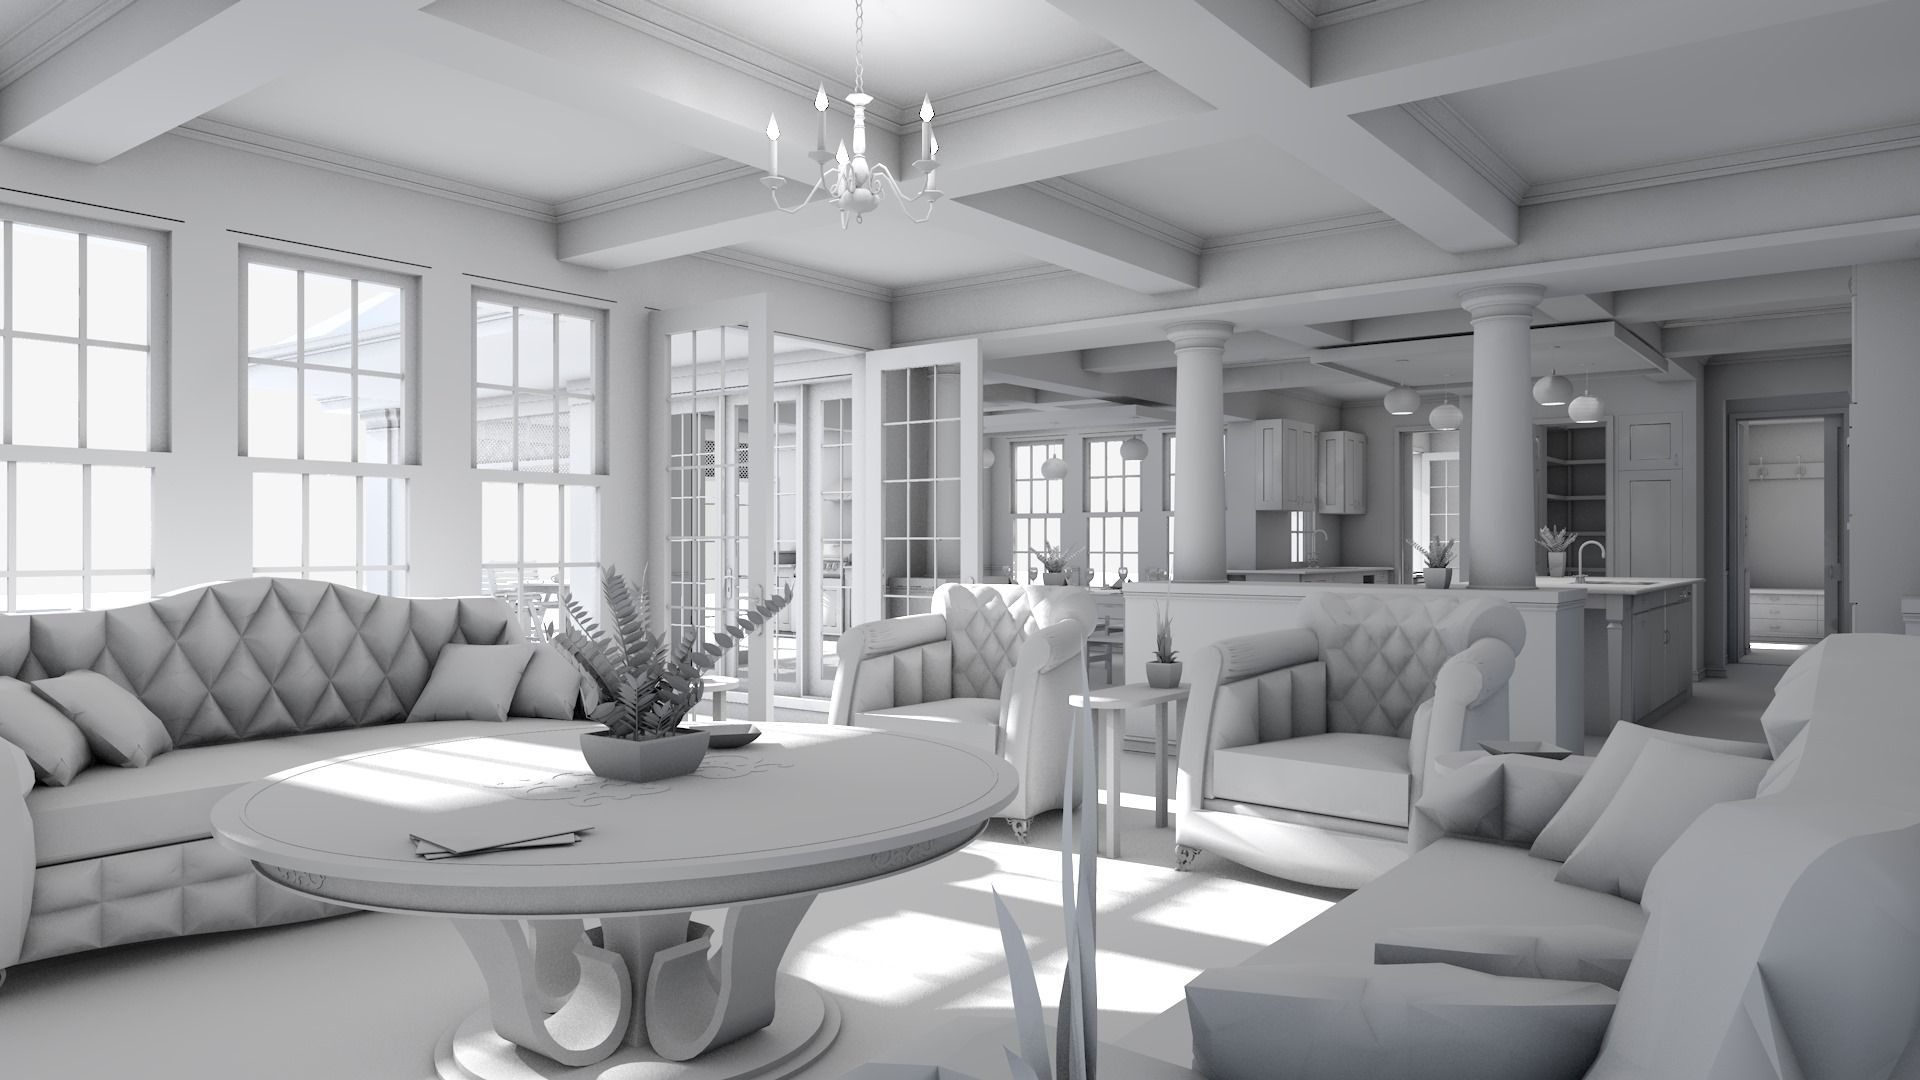 Also Demonstrates Our Sunlight Studies Where We Virtually Show The Lighting  In Your Home Throughout The Day.